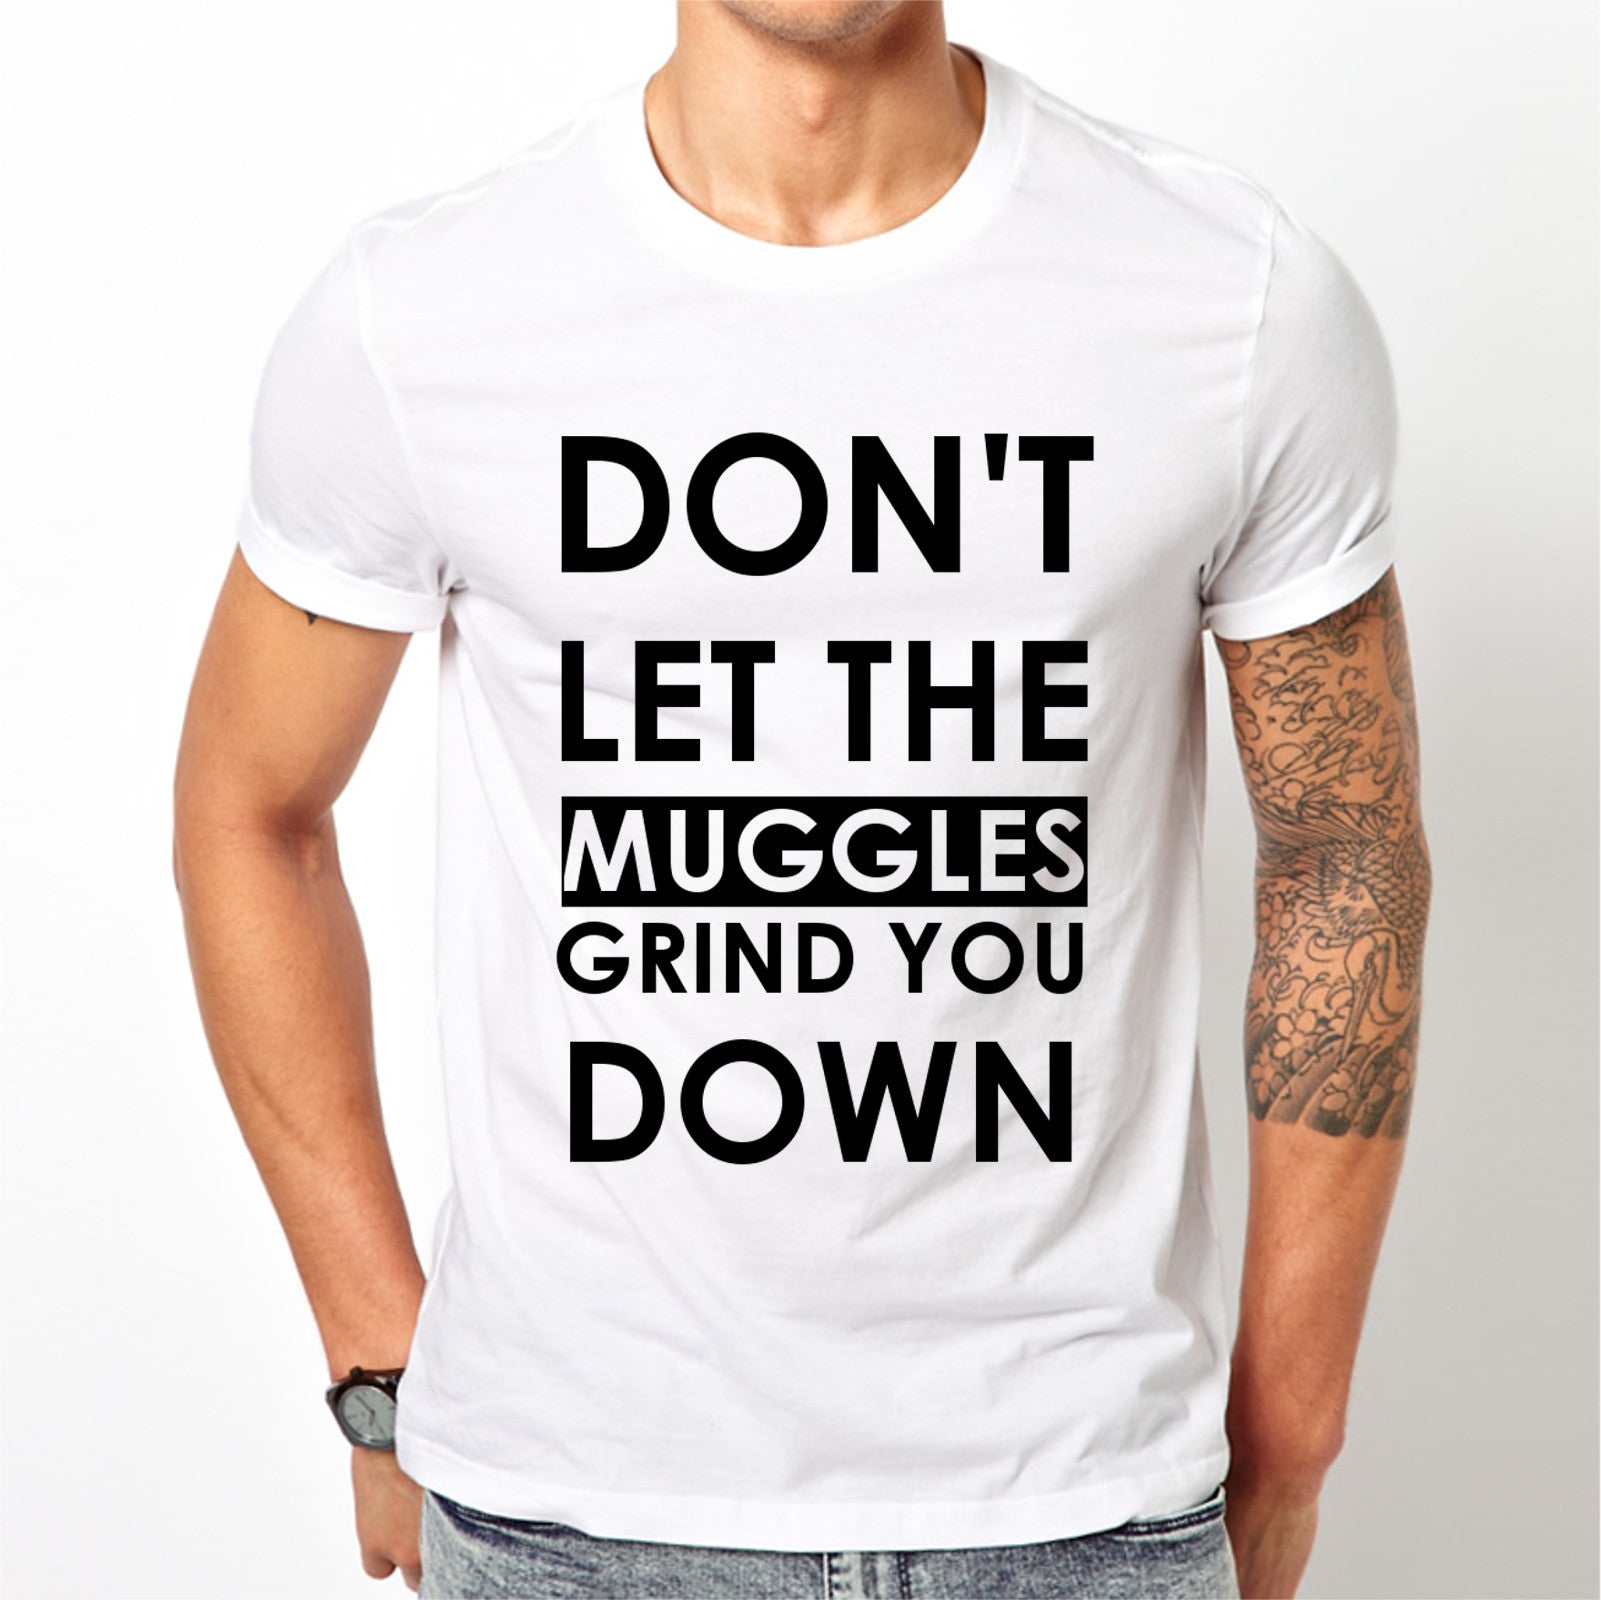 Don't let the muggles grind you down T shirt White Sizes S M L XL XXL Harry Potter